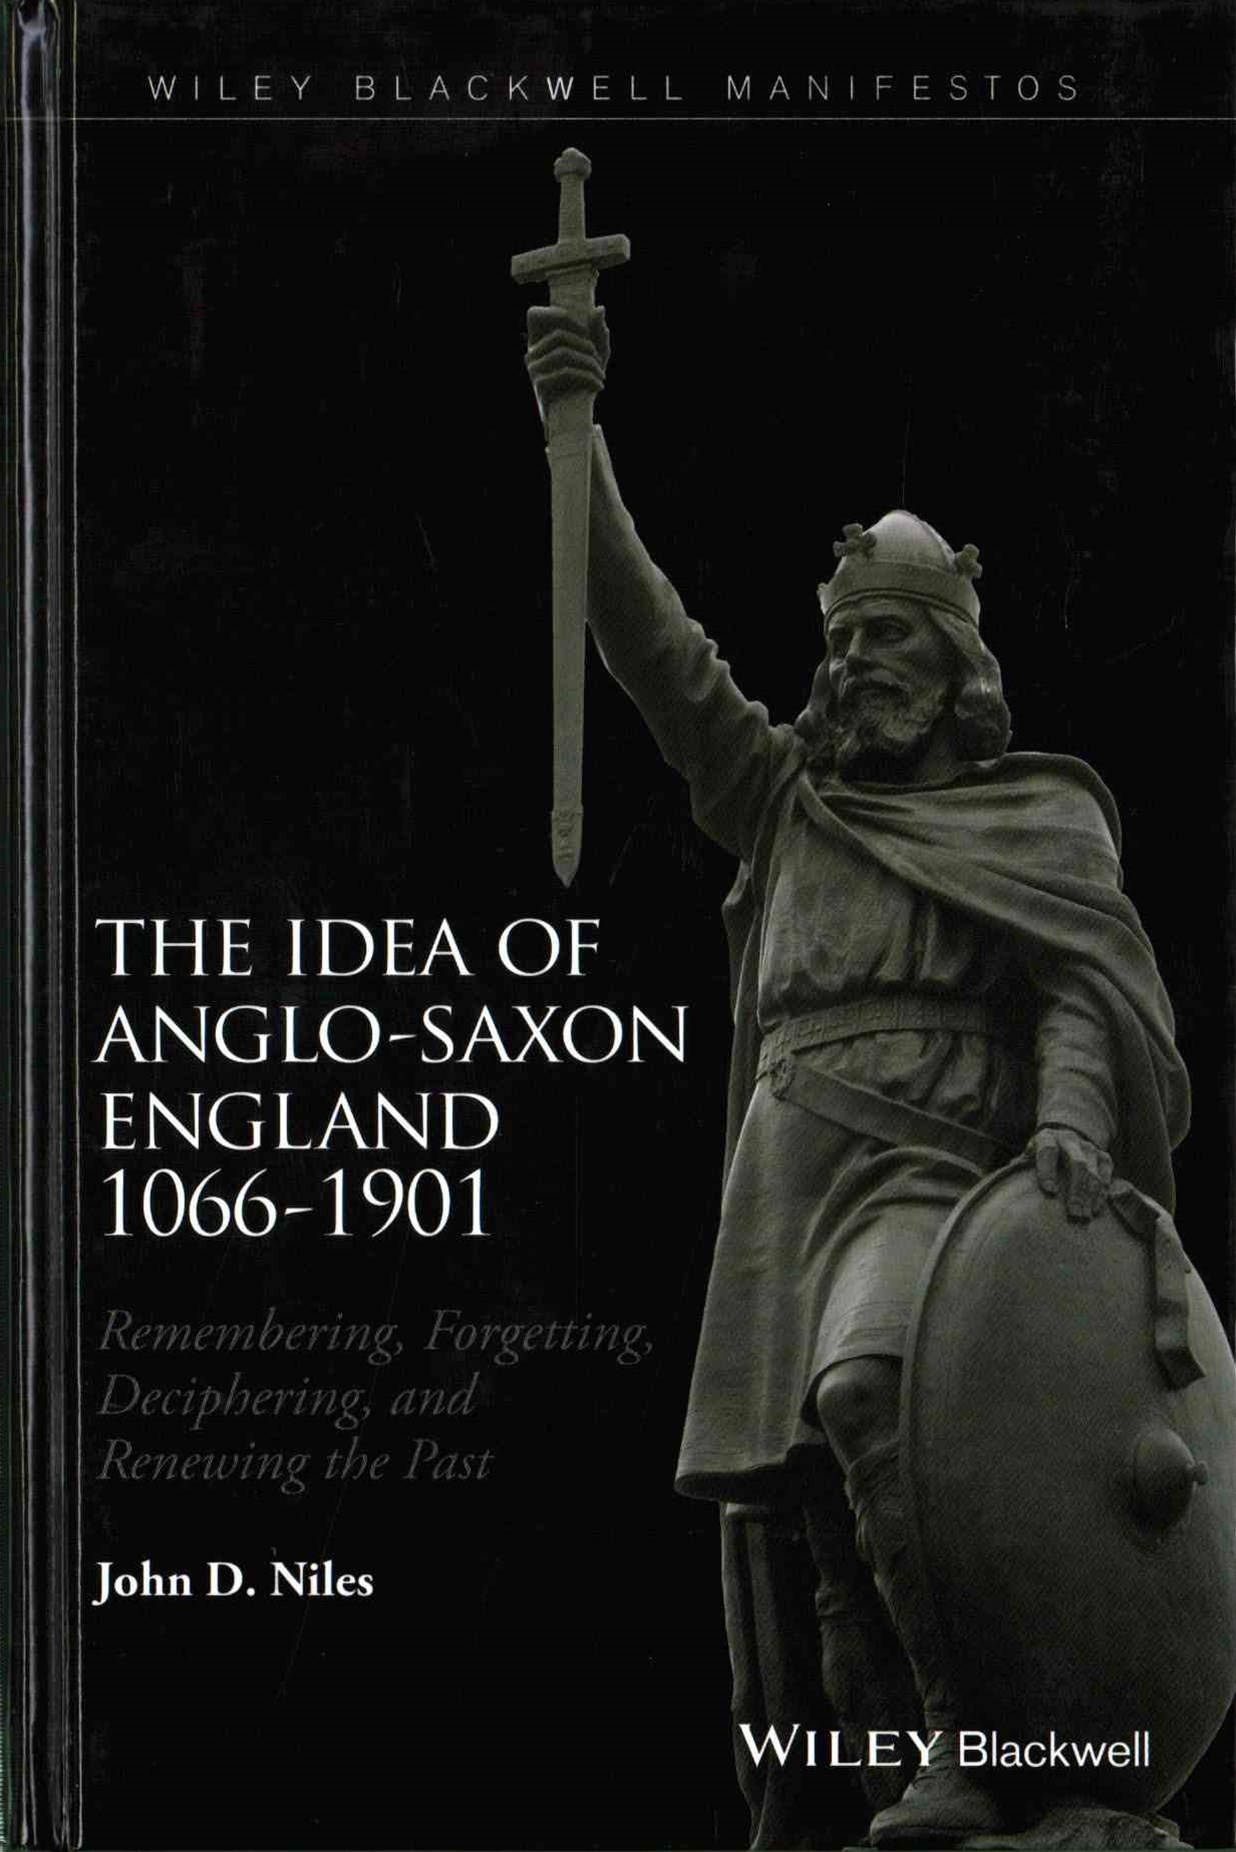 The Idea of Anglo-saxon England 1066-1901 -       Remembering, Forgetting, Deciphering, and Renewingthe Past